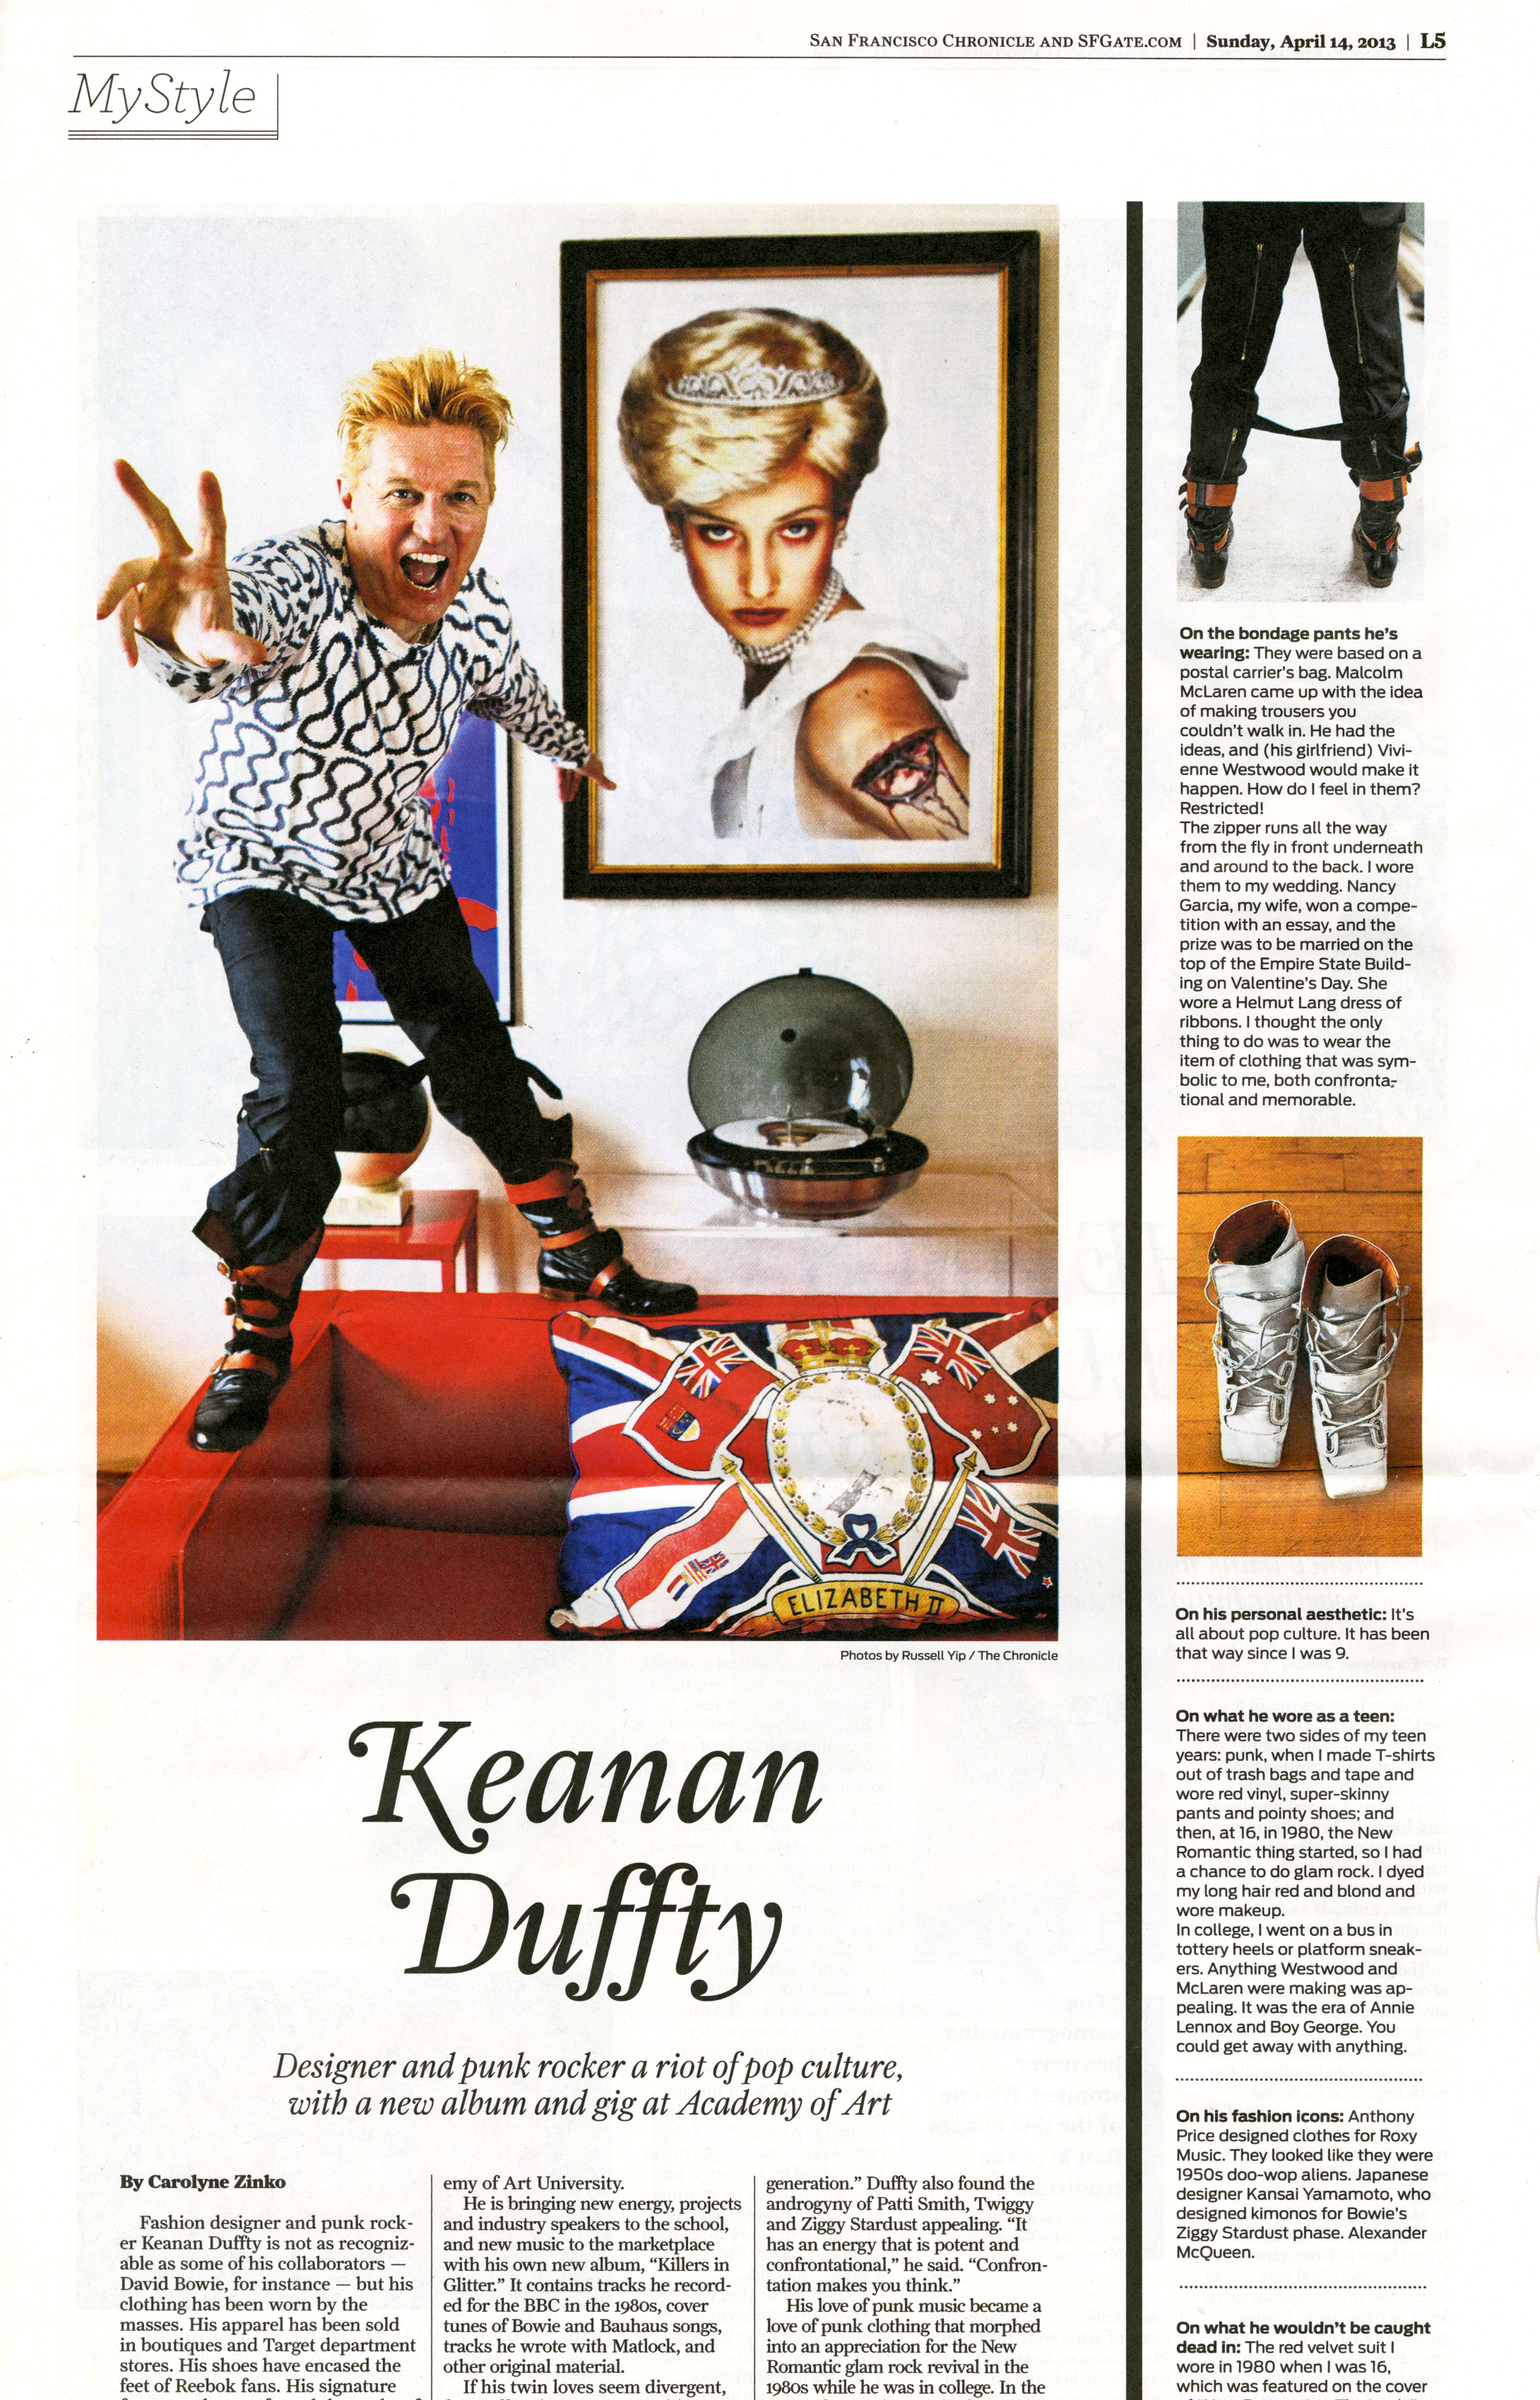 Keanan Duffty, Senior Director of Fashion Merchandising, featured in the San Francisco Chronicle